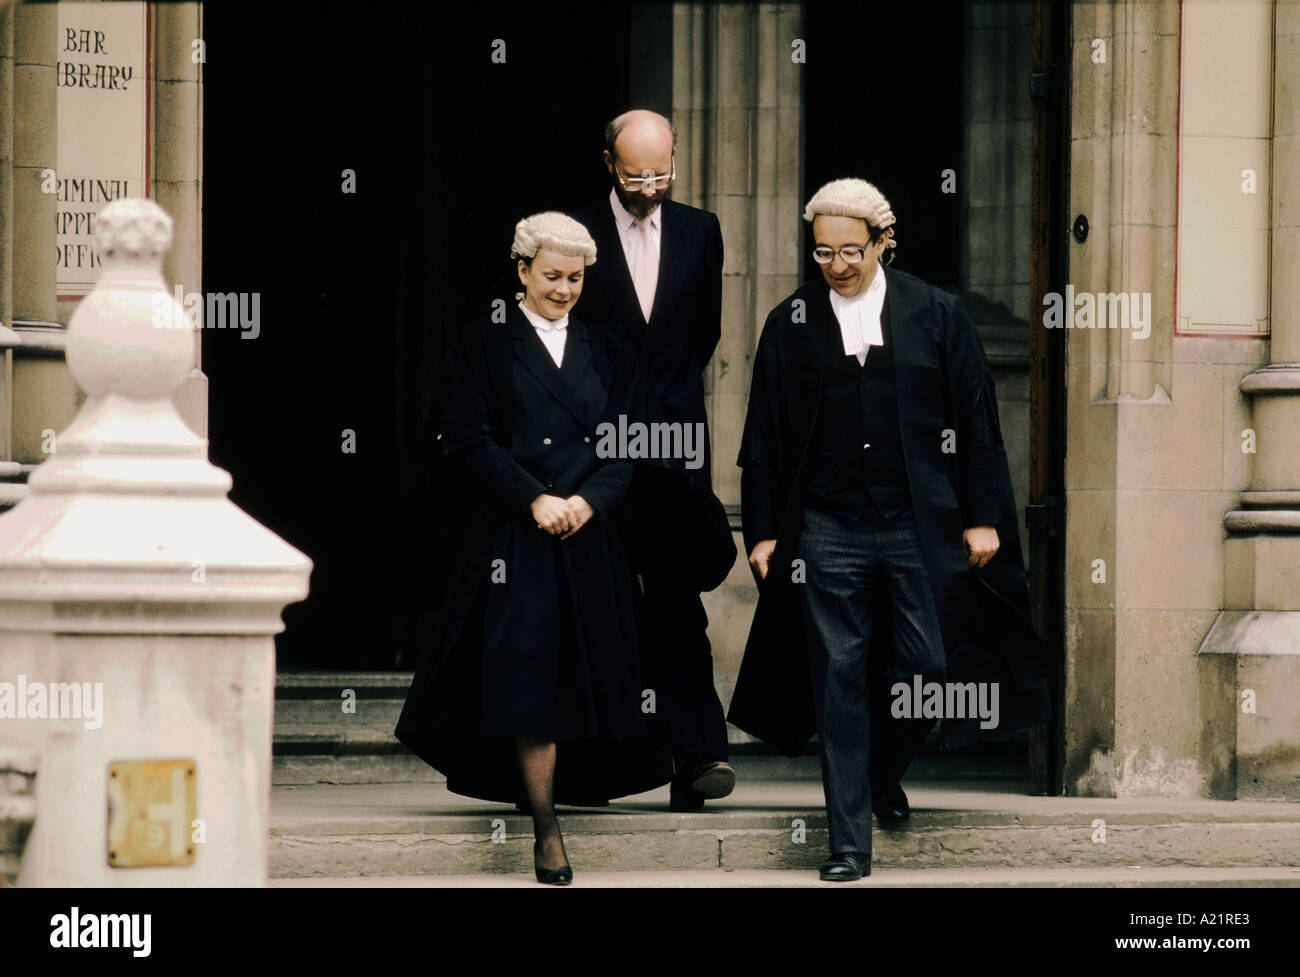 MALE FEMALE BARRISTER WEARING WIG GOWN LEAVING THE HIGH COURT LONDON ... 84c6302b3062